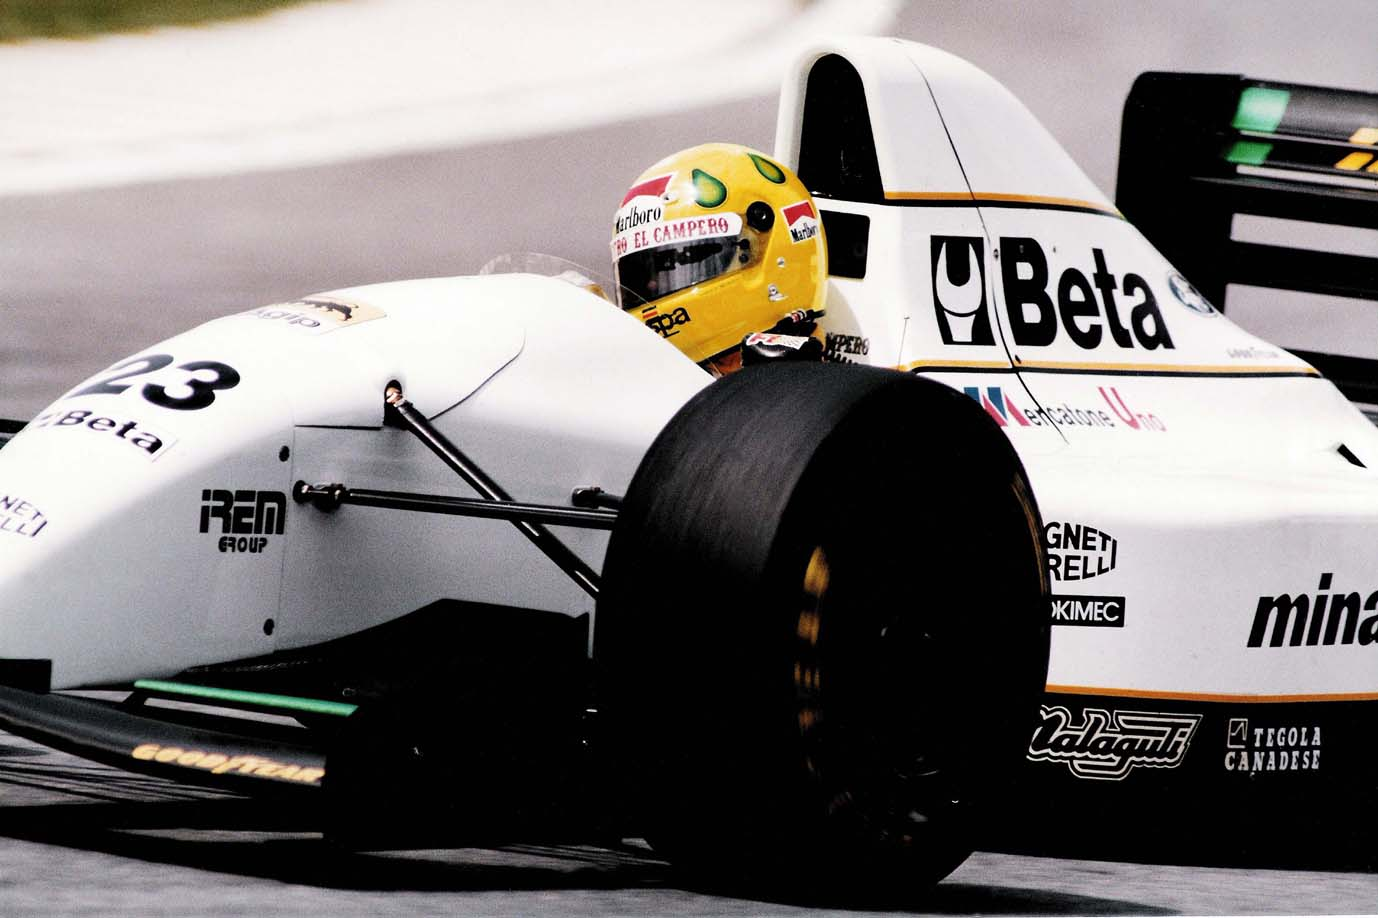 press_minardi_m193_christian_fittipaldi_miguelcostajr_2